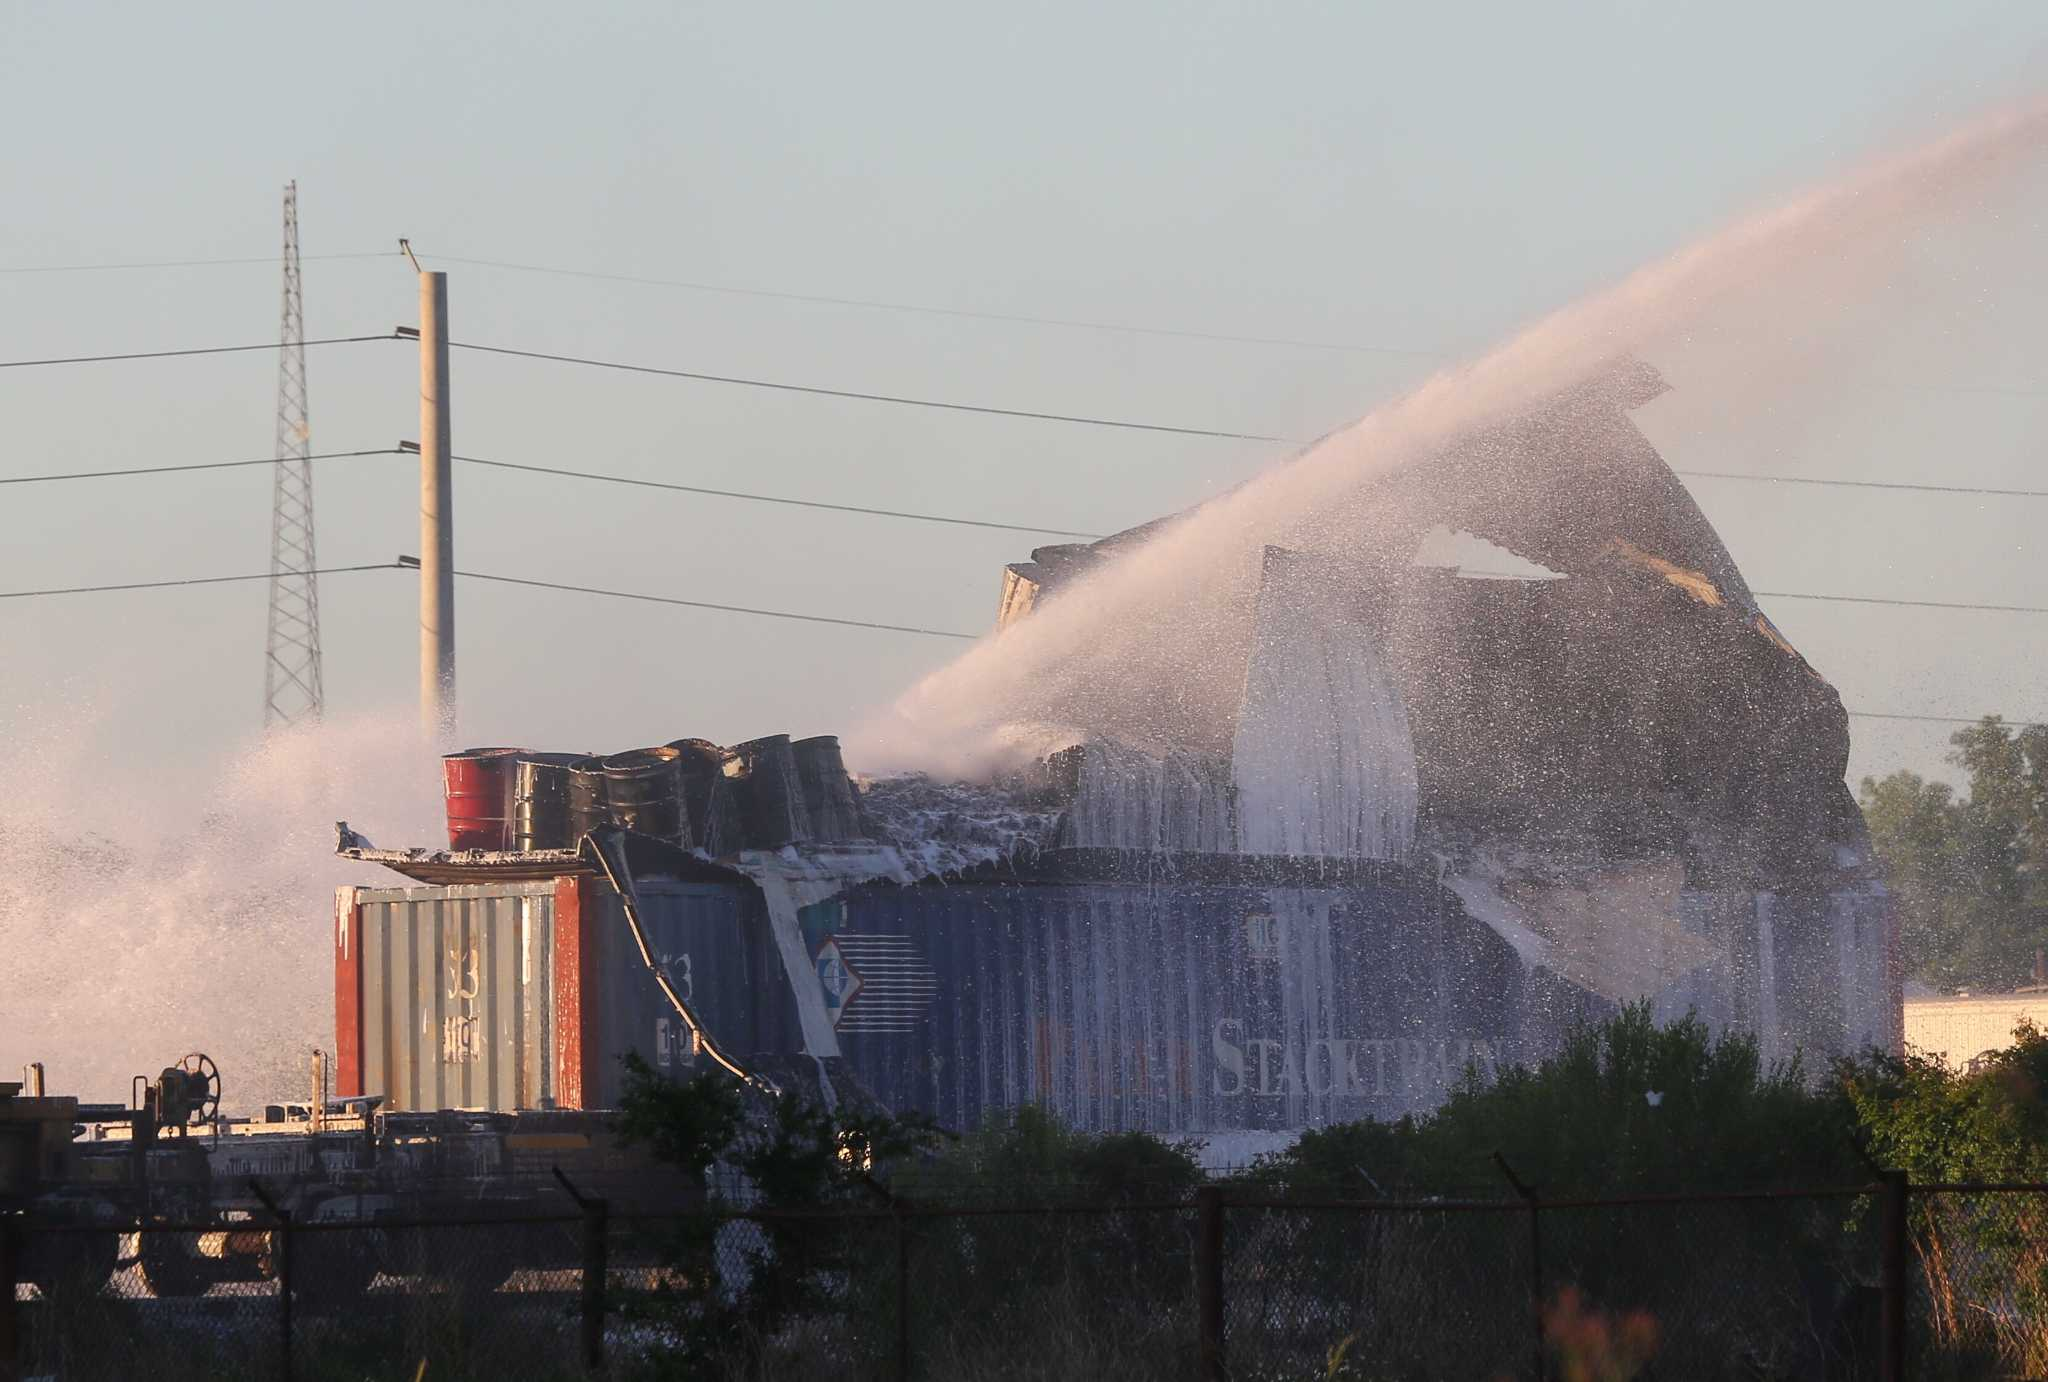 Train explosion leads to chemical release in downtown